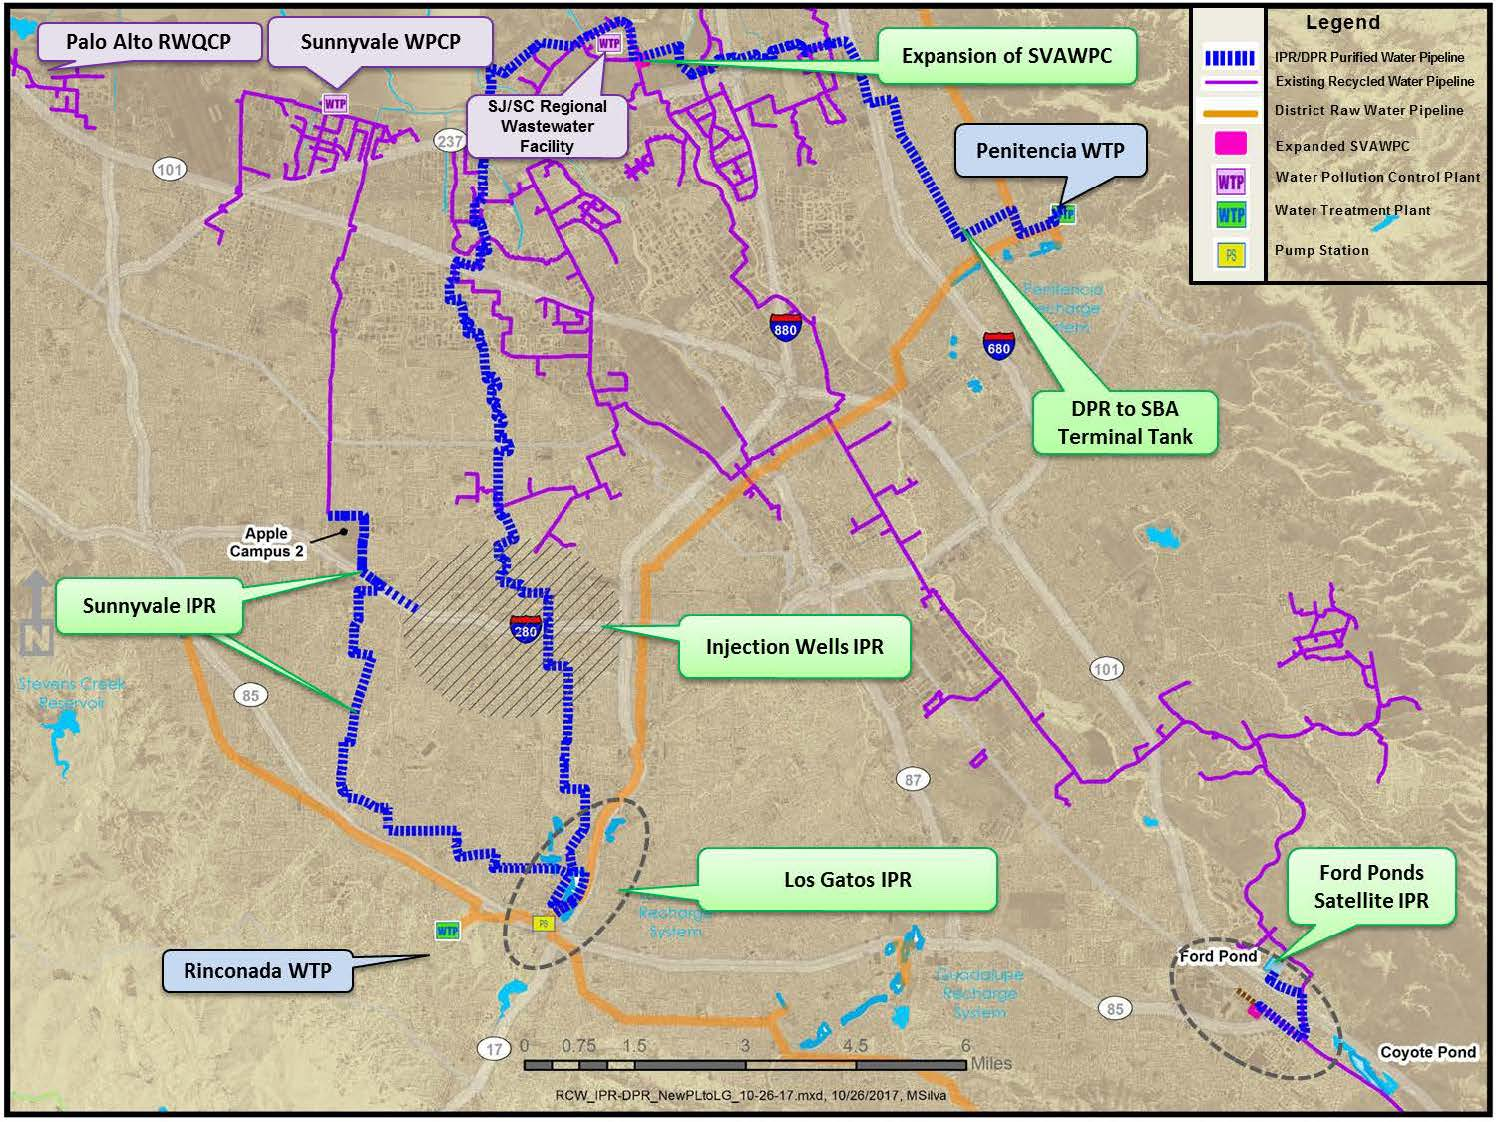 P3 Project Map Dec 2017.jpg | Santa Clara Valley Water on brandon campus map, minneapolis campus map, saint joseph's campus map, claremont campus map, western state campus map, mid valley campus map, west los angeles campus map, san francisco university campus map, newark campus map, fresno campus map, malone campus map, marion campus map, le moyne campus map, nevada campus map, pasadena campus map, san marcos campus map, scu campus map, madera campus map, utah valley campus map, sierra campus map,